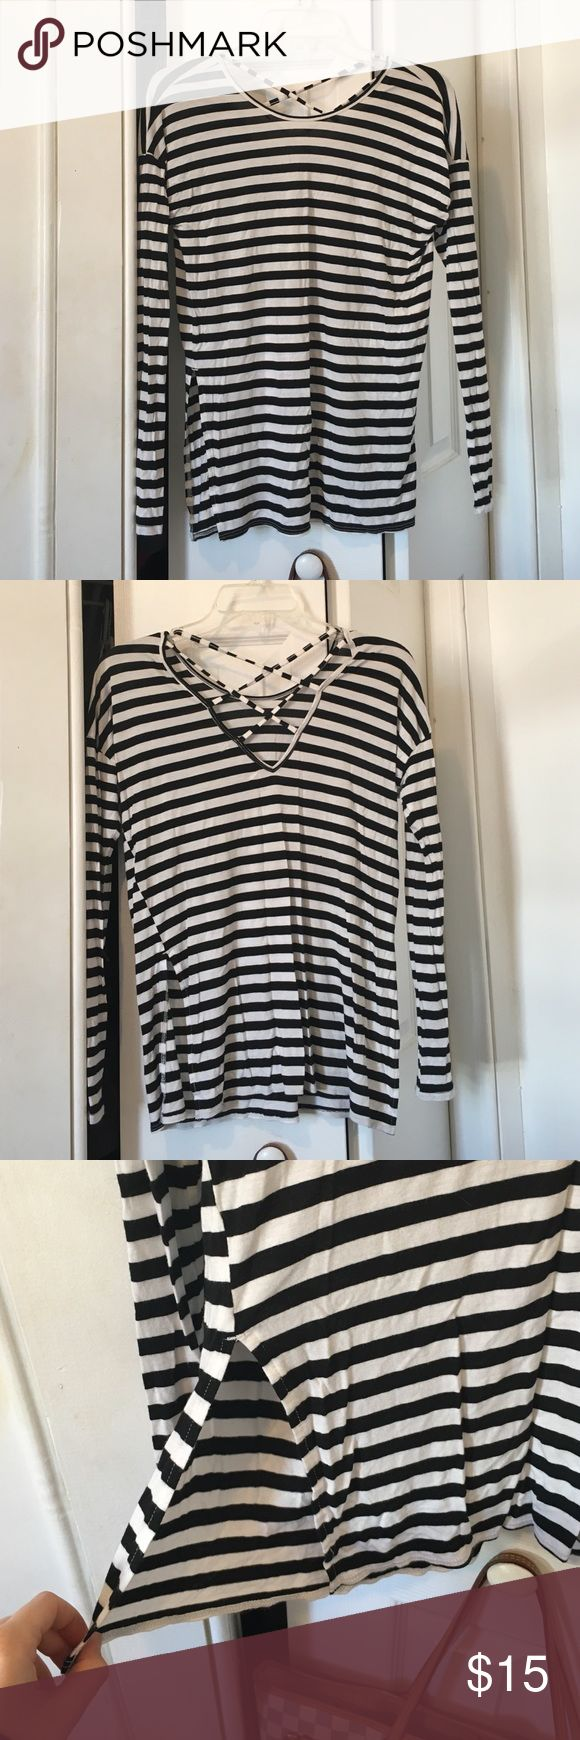 Hollister Black and White strappy top Has a cute strappy back and slits on sides! Sexy fit. Only worn a couple times. Hollister Tops